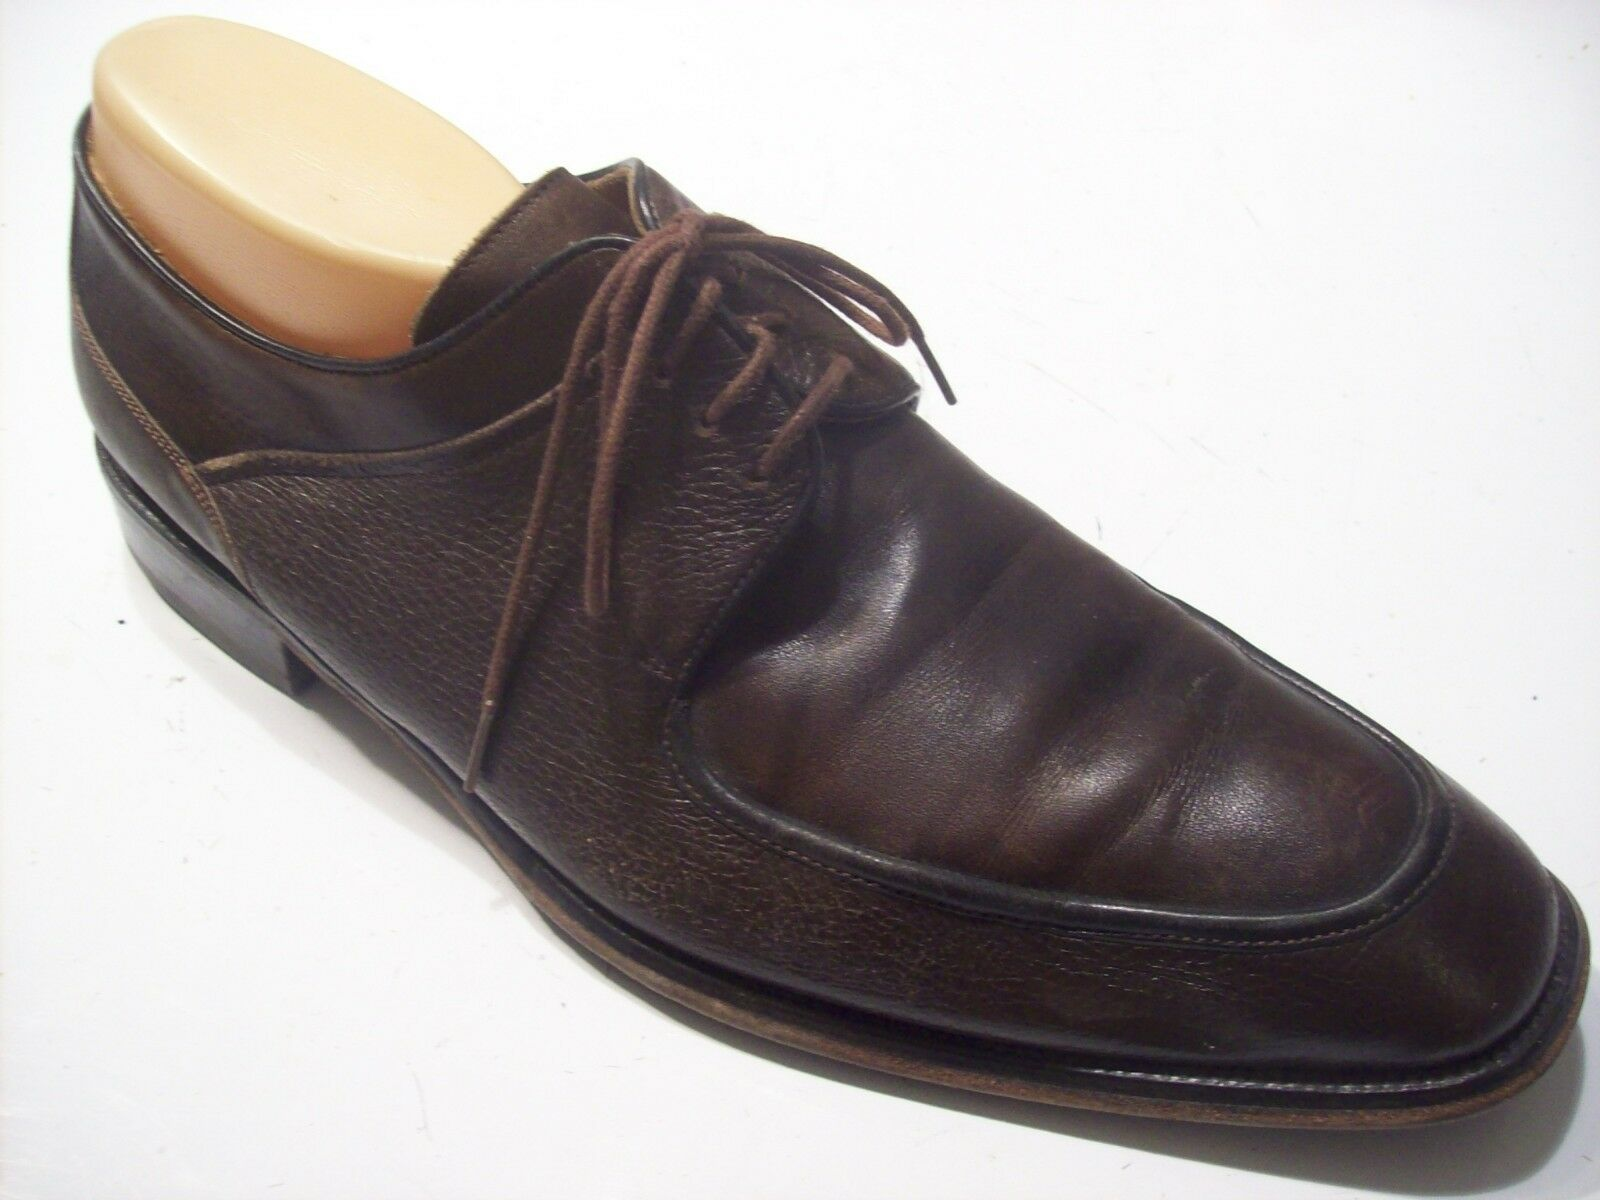 Mezlan Sidney Brown Leather Tie Oxfords Loafers Mens shoes Size 11.5 @ cLOSeT